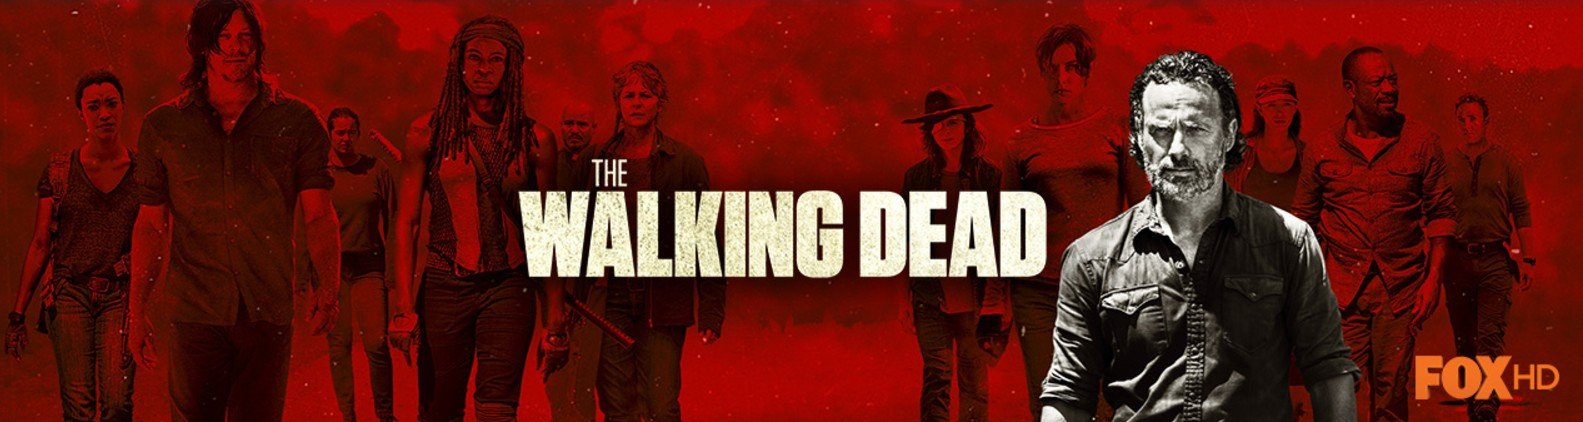 walking-dead-sky-serien